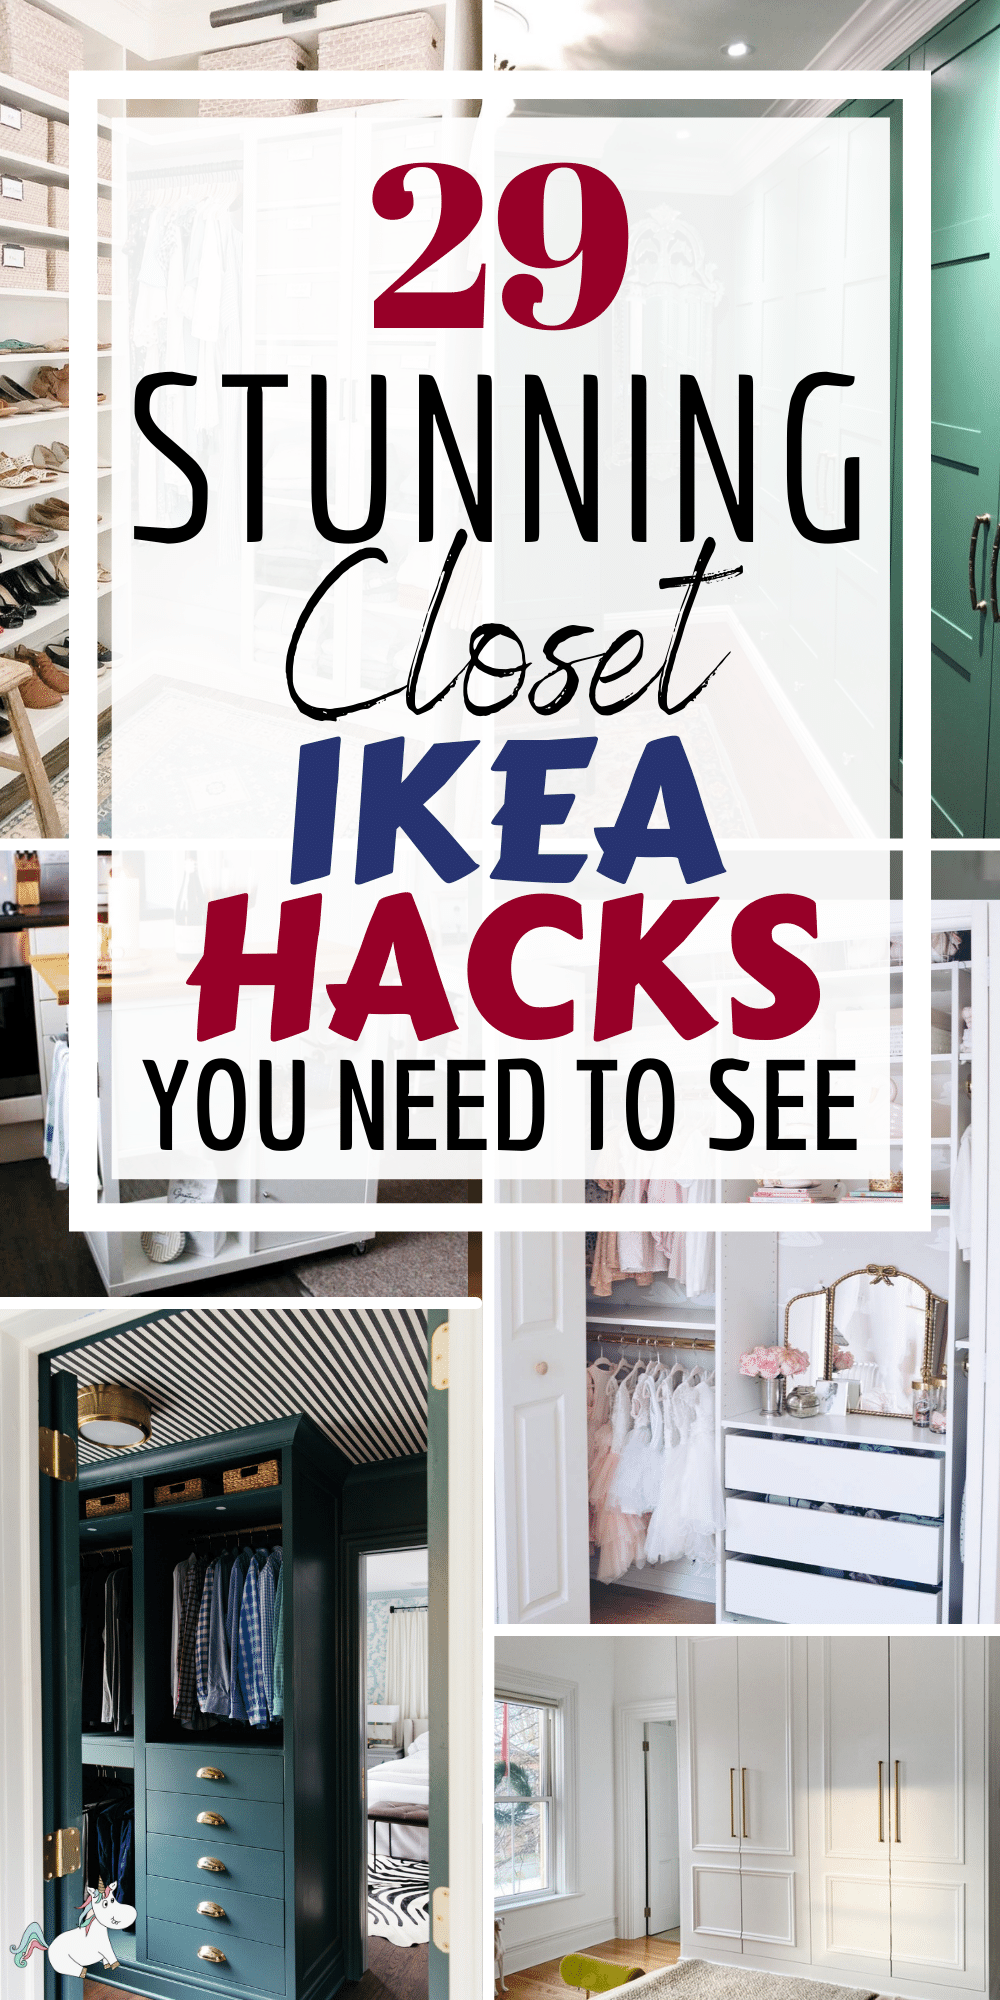 IKEA closet hacks are the perfect solution if you're looking for a unique closet for your home that fits all your storage requirements. It can be really difficult to find an inexpensive storage solution that solves all your storage and organizing problems… That is until you discover IKEA closet hacks of course!